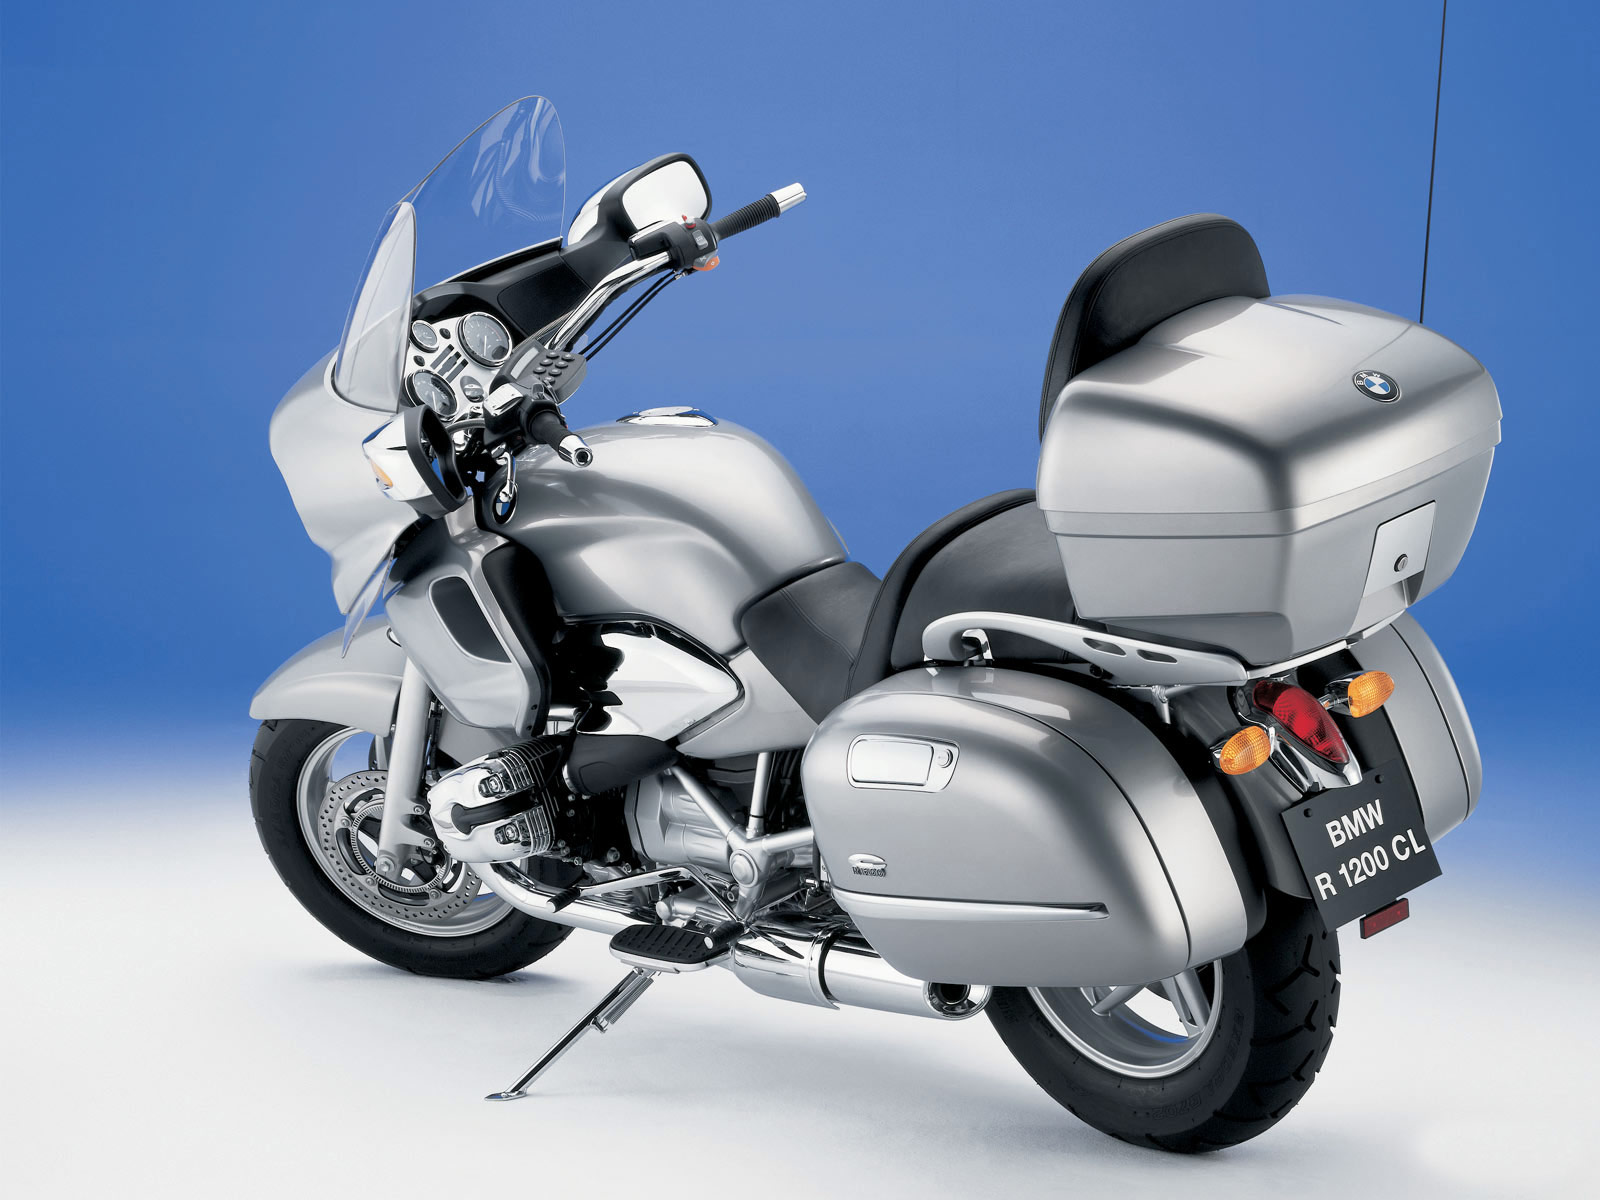 2002 bmw r1200cl pictures specs motorcycle accident lawyers. Black Bedroom Furniture Sets. Home Design Ideas